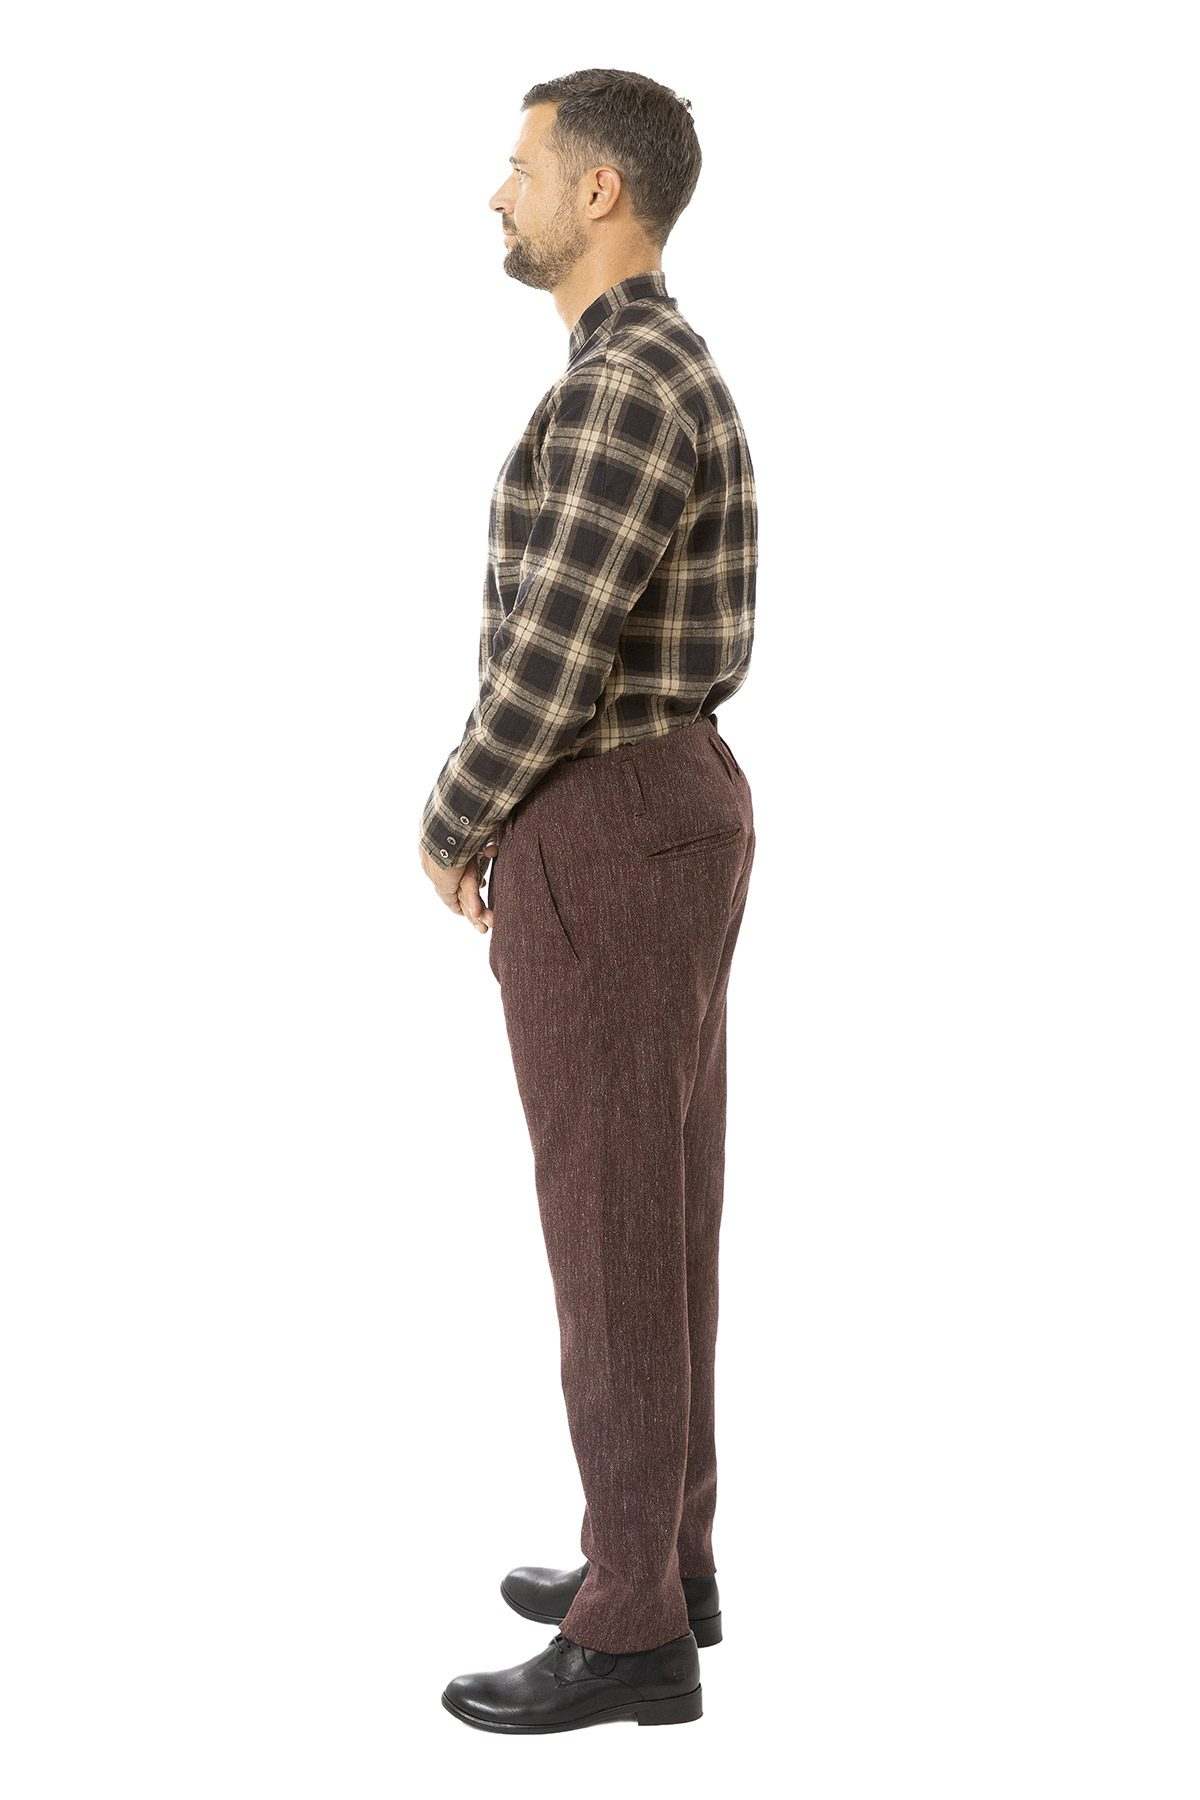 hannibal aw19 trousers hose heinke camin red seite